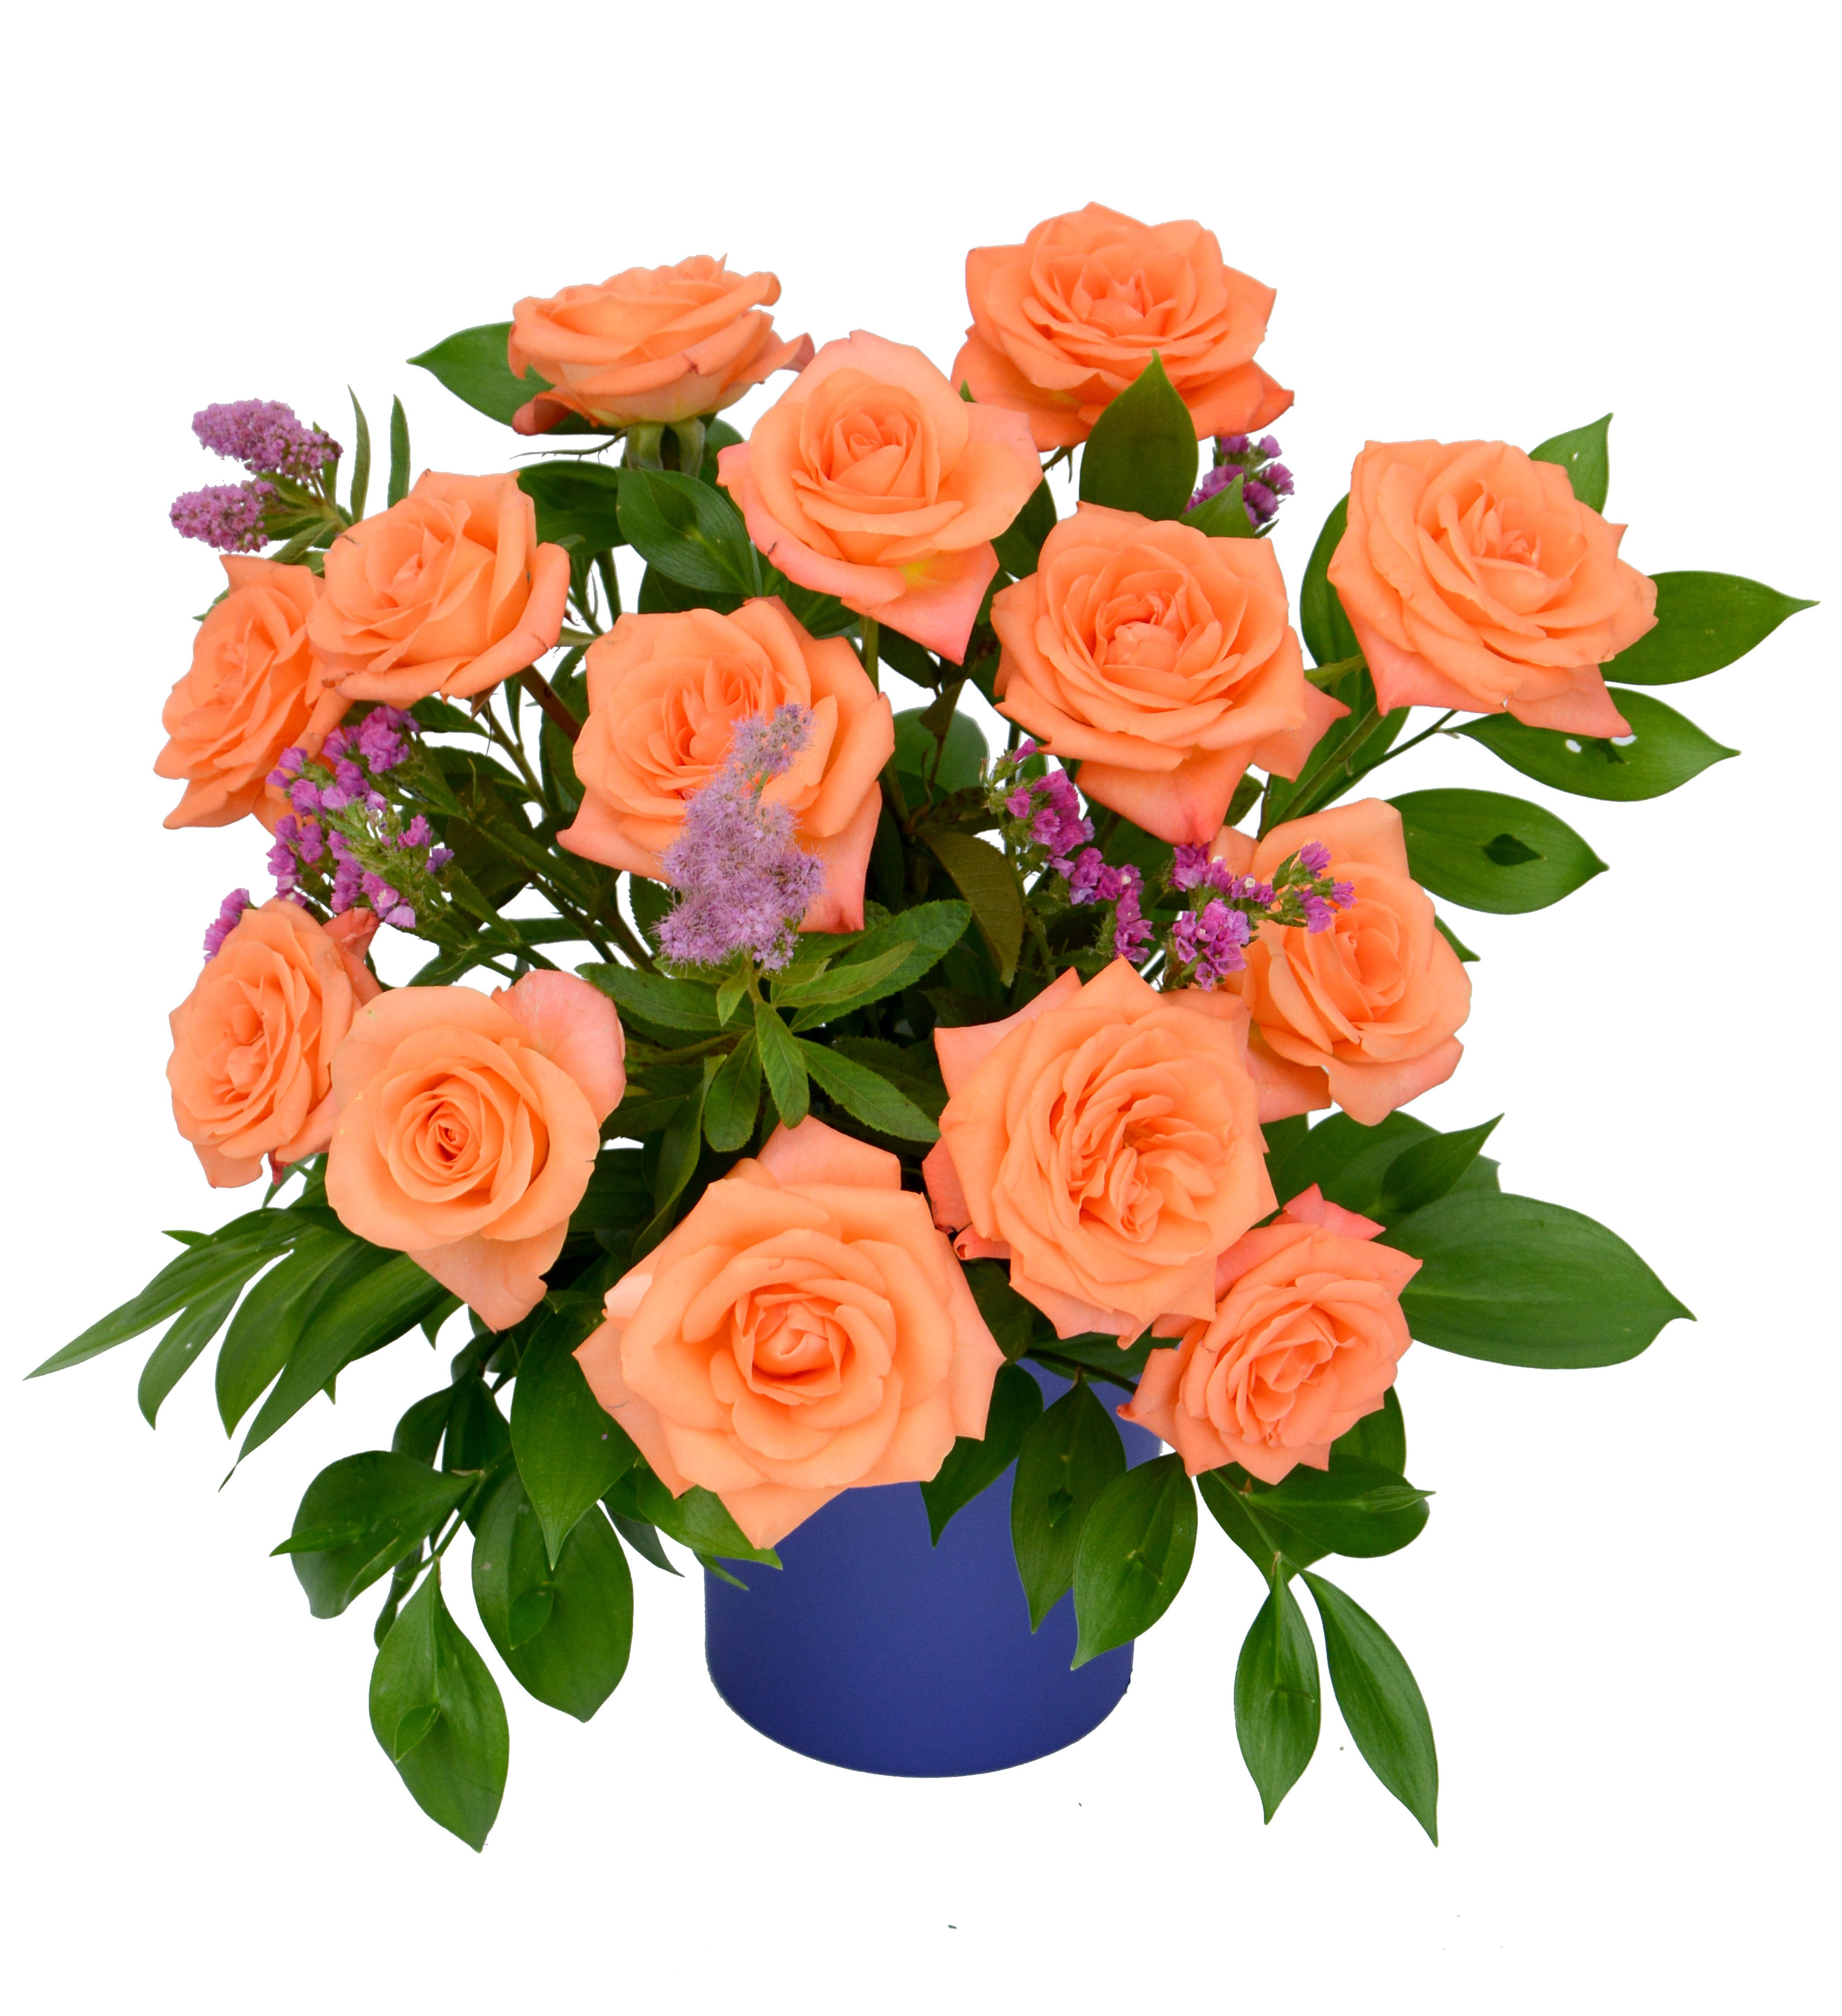 Floral decoration for your special occasion!